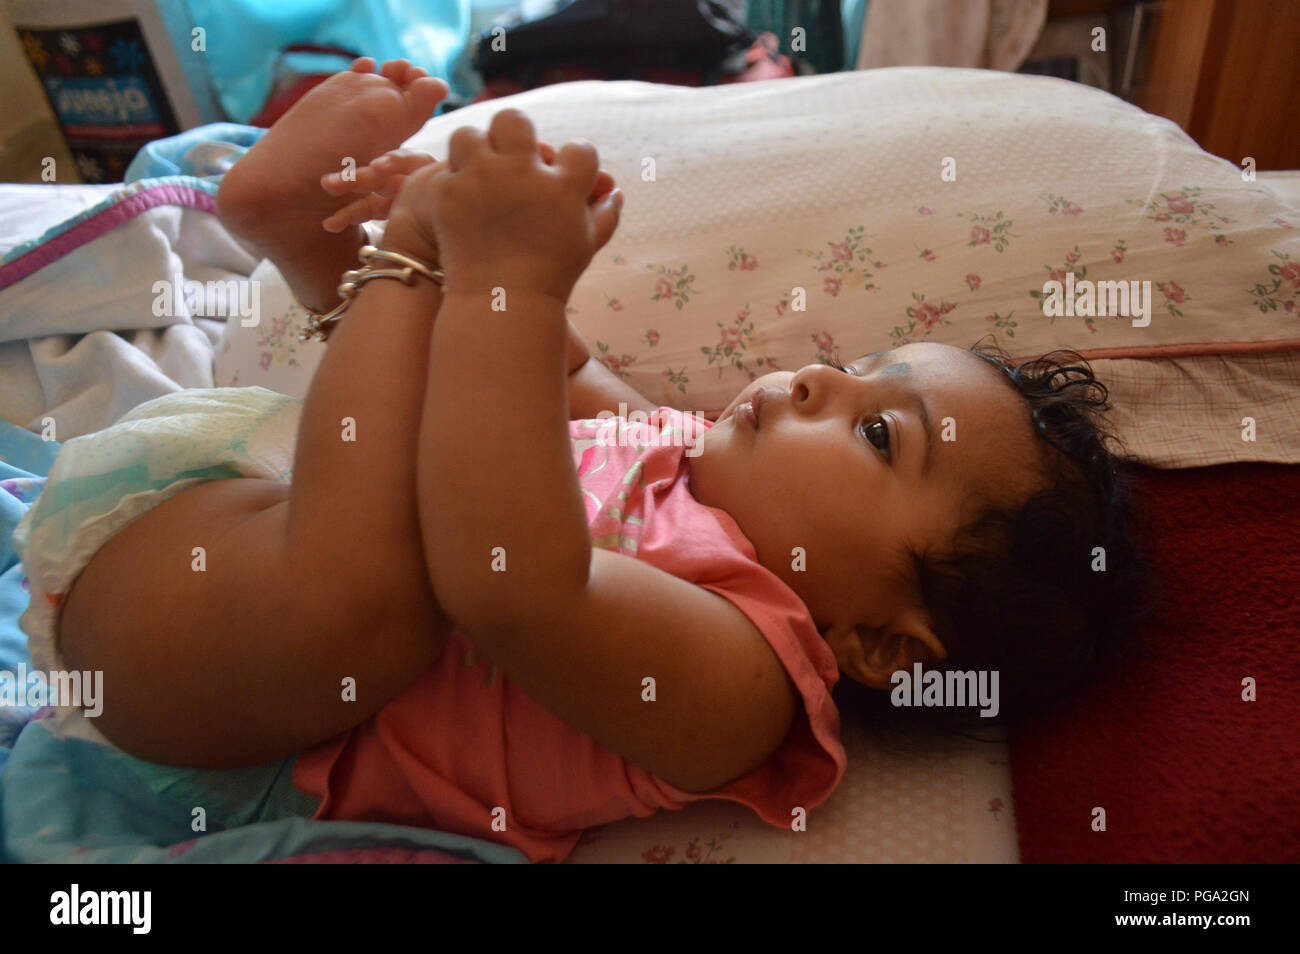 Infant in pink shirt lying on bed and holding her left foot and looking at it - Stock Image